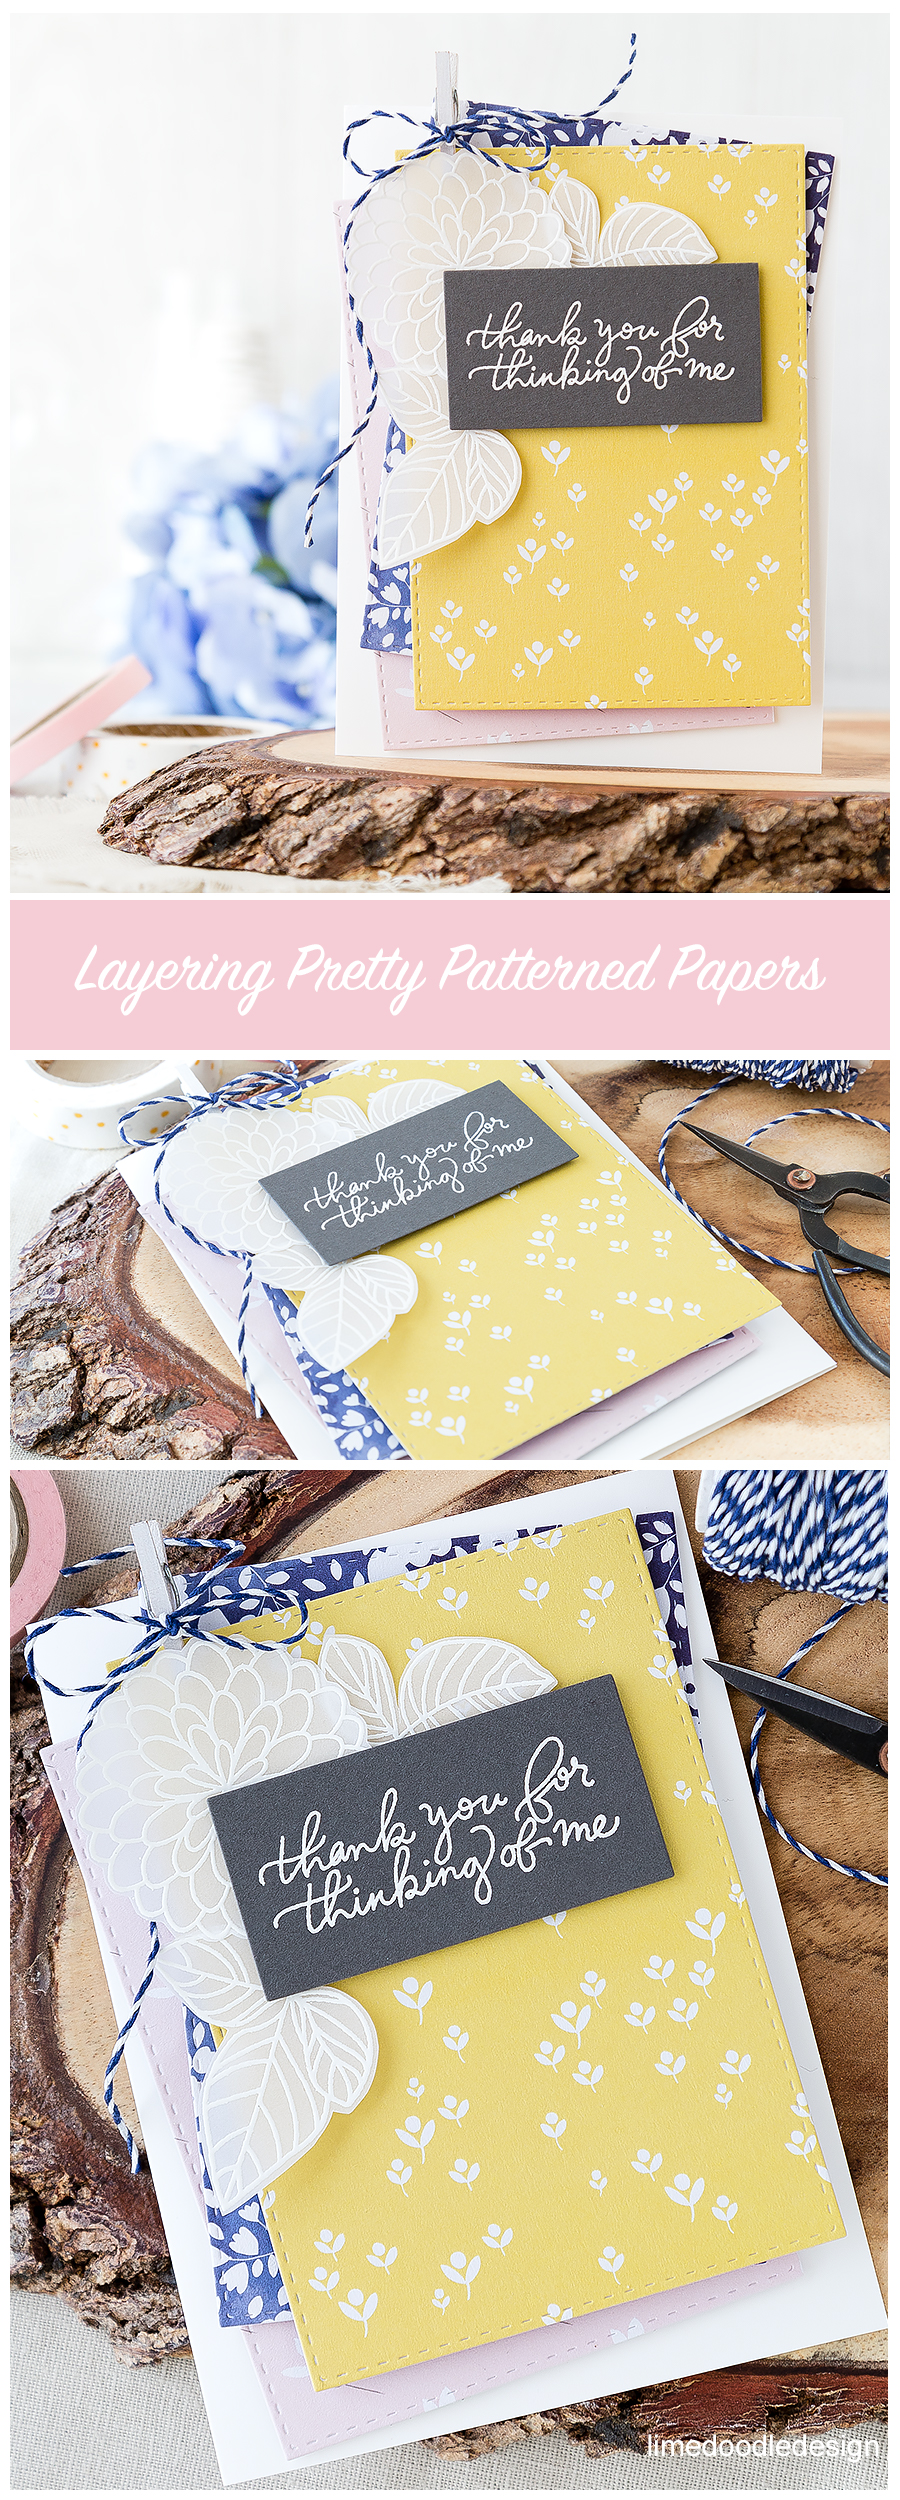 Layering pretty patterned papers on this simple thank you card. Find out more by clicking on the following link: http://limedoodledesign.com/2016/07/layering-pretty-patterned-papers/